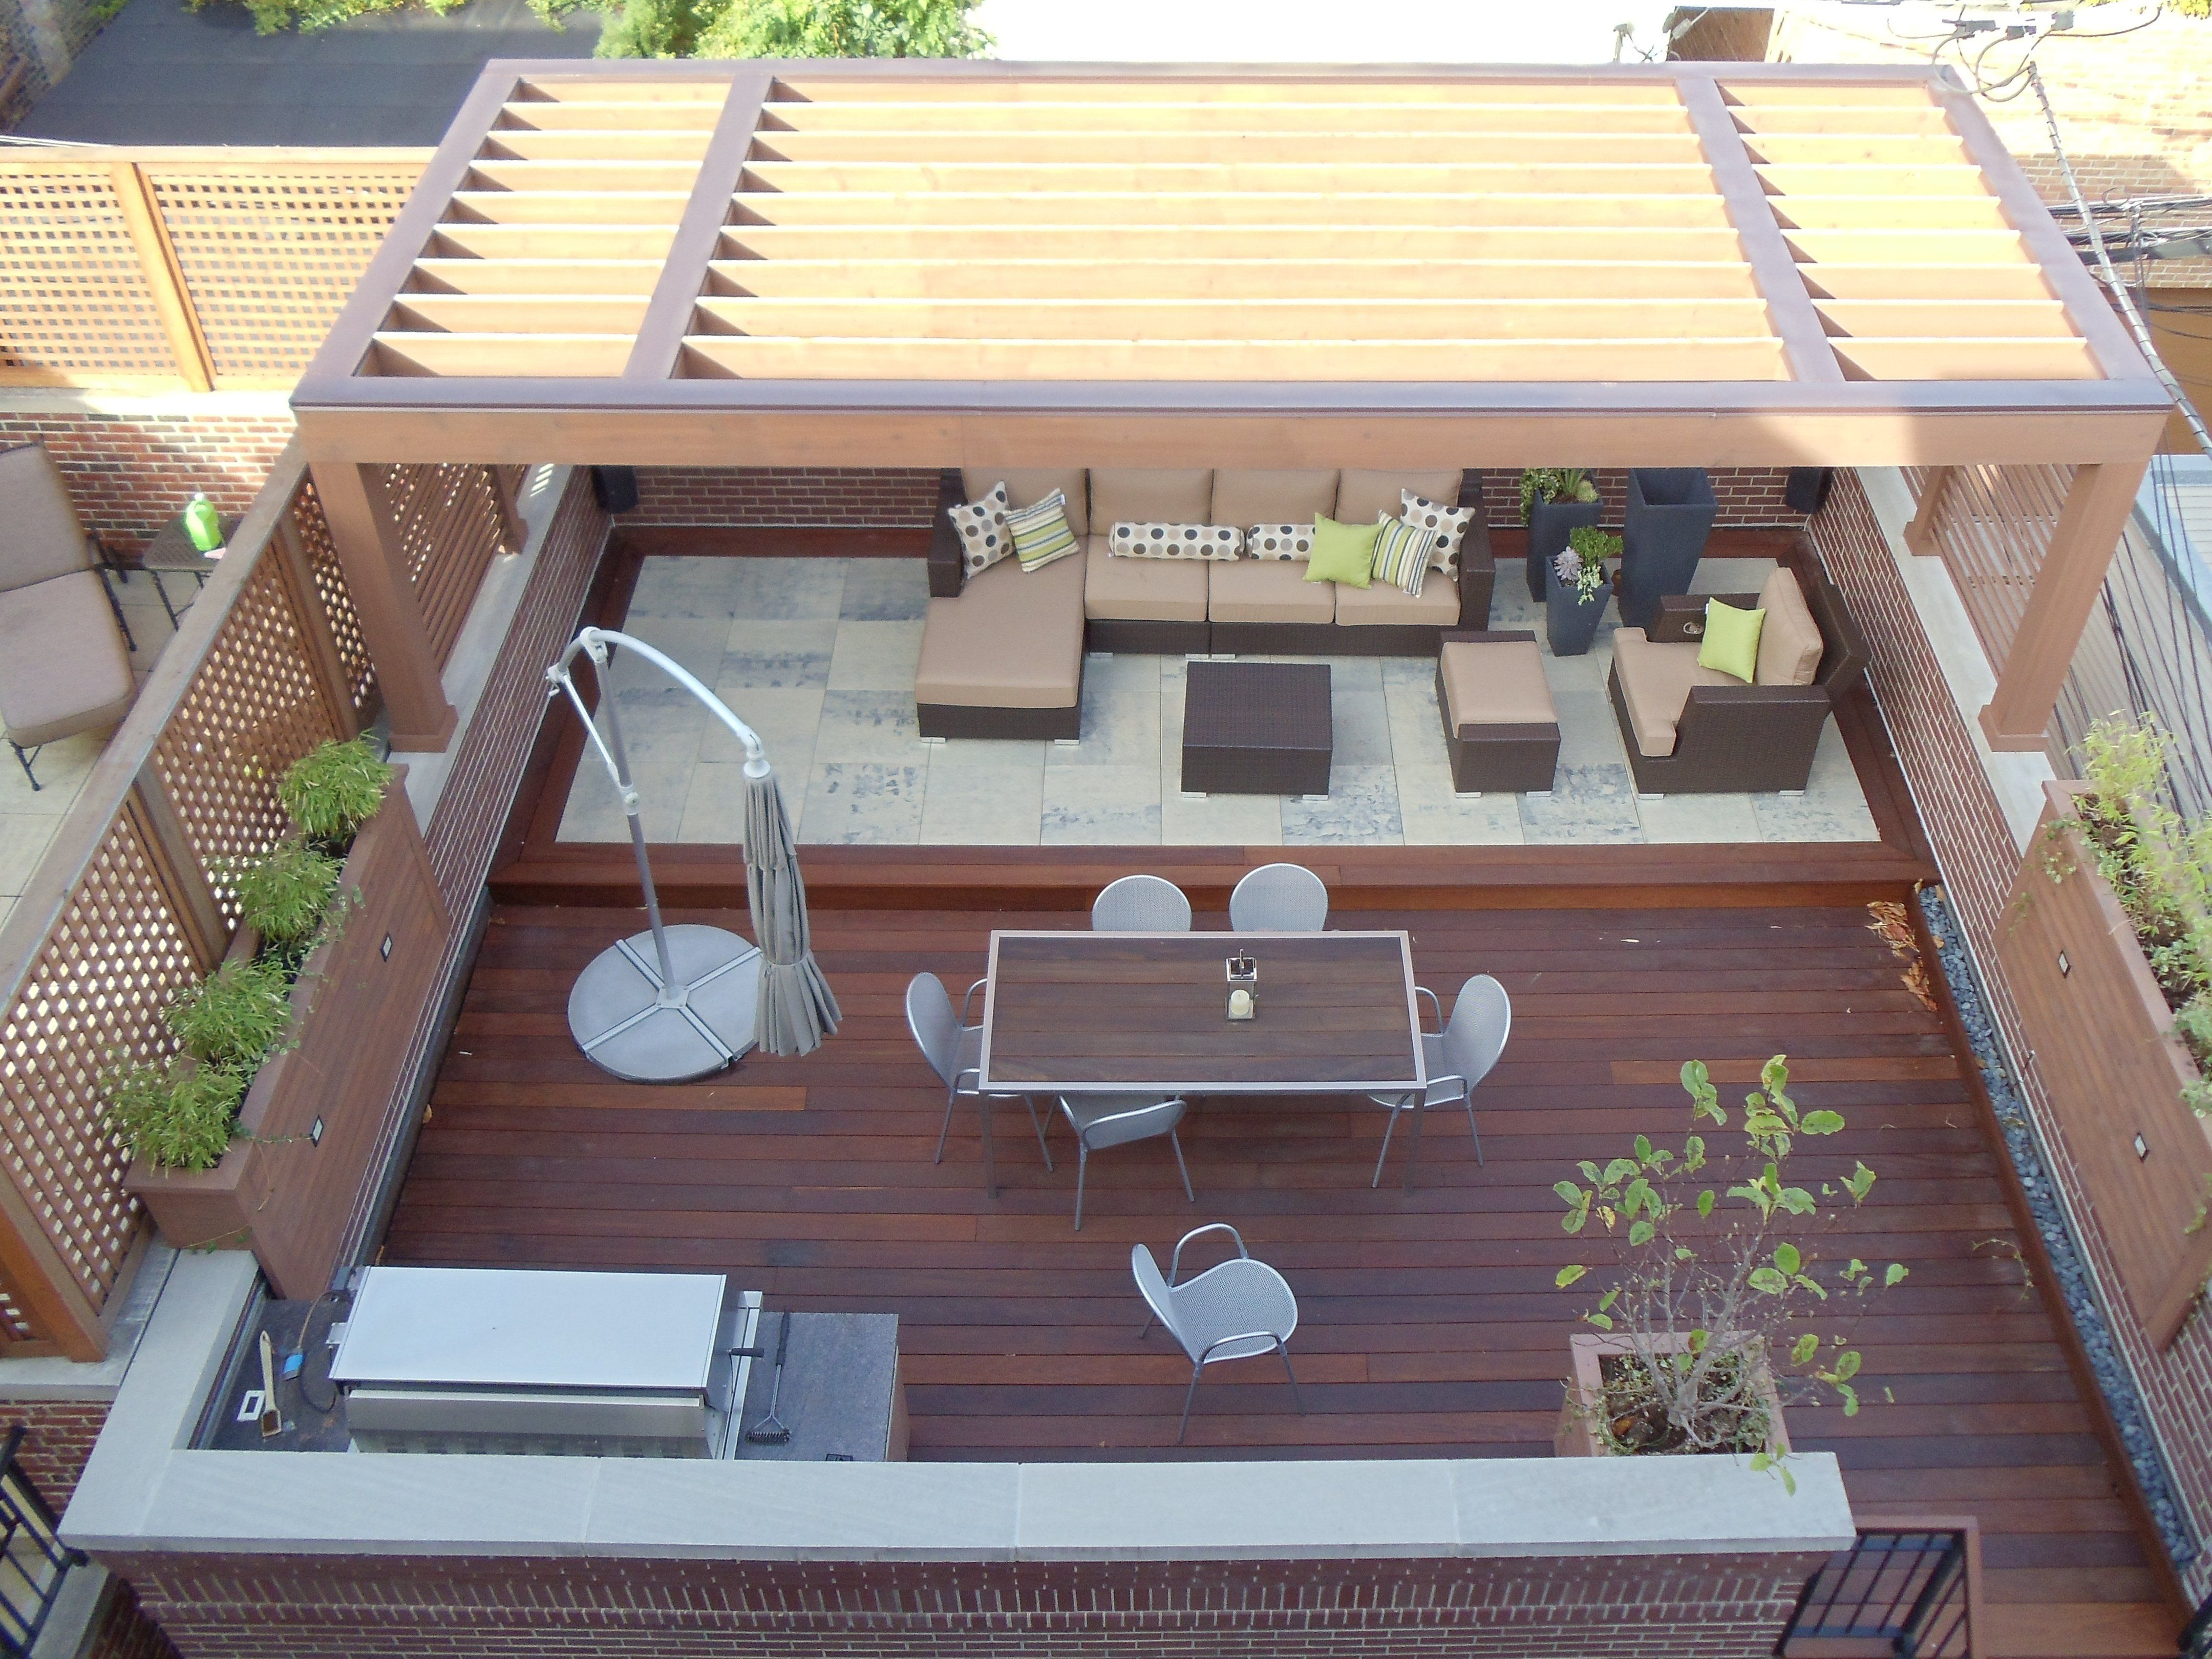 Roof Astounding Roof Deck Design Porch Roofs Over Decks Deck For Rooftop Deck Ideas Bring In Increase Rooftop Patio Design Rooftop Patio Rooftop Terrace Design